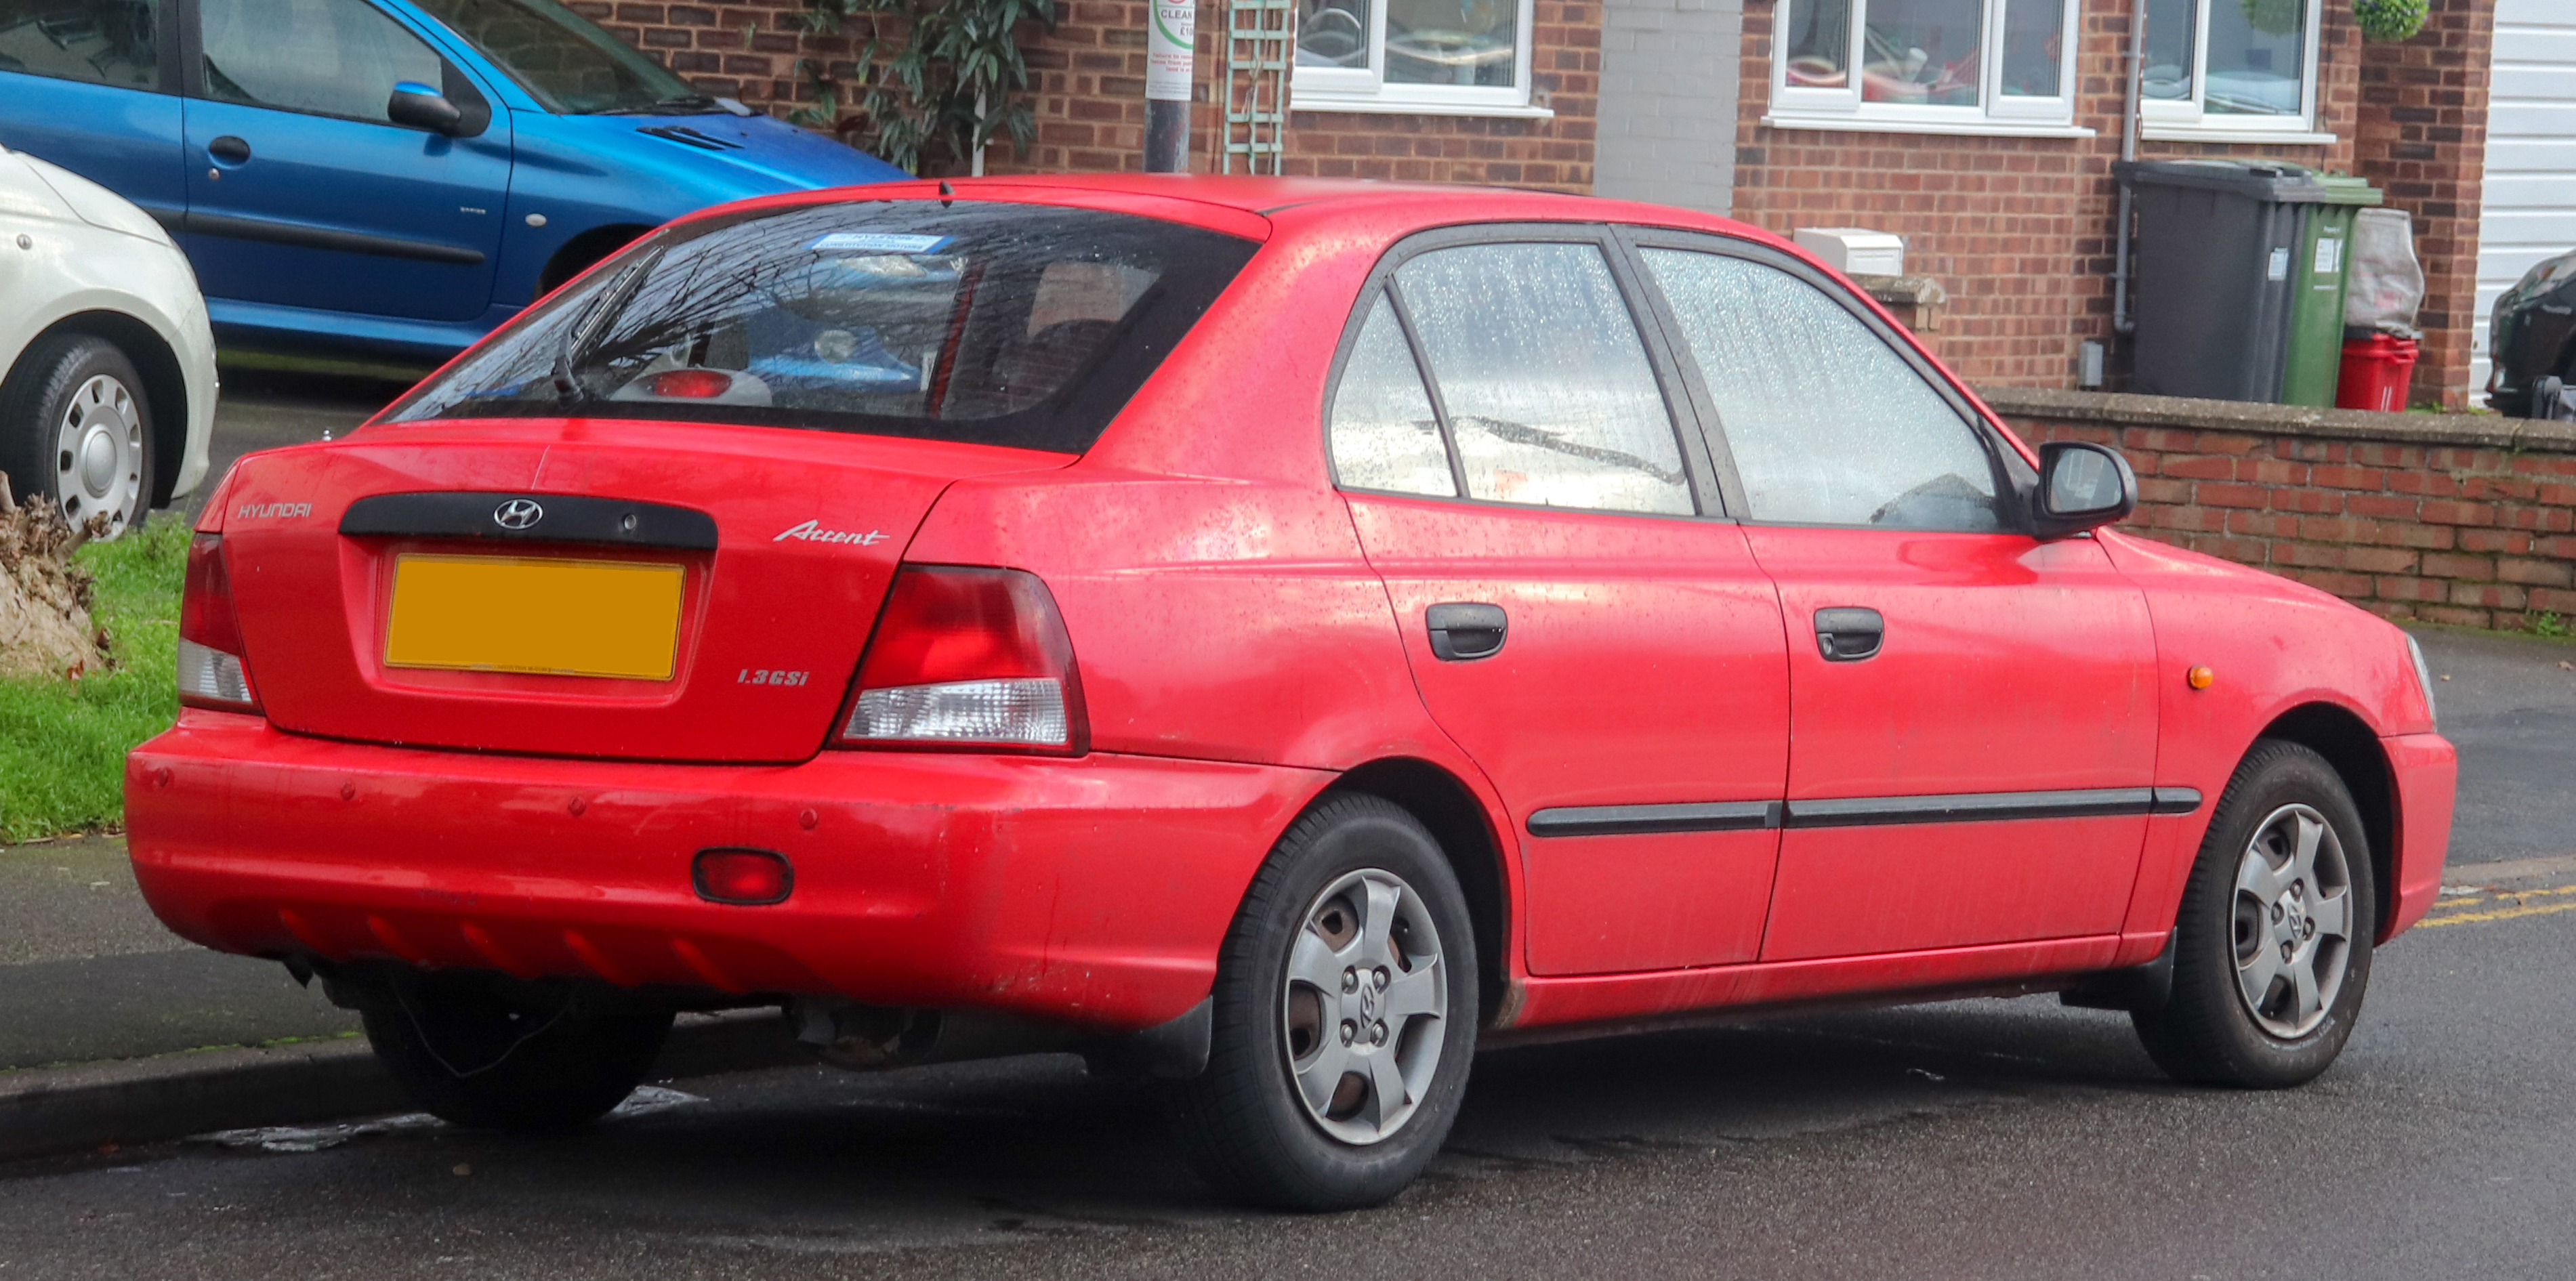 file 2002 hyundai accent gsi 1 3 rear jpg wikimedia commons https commons wikimedia org wiki file 2002 hyundai accent gsi 1 3 rear jpg